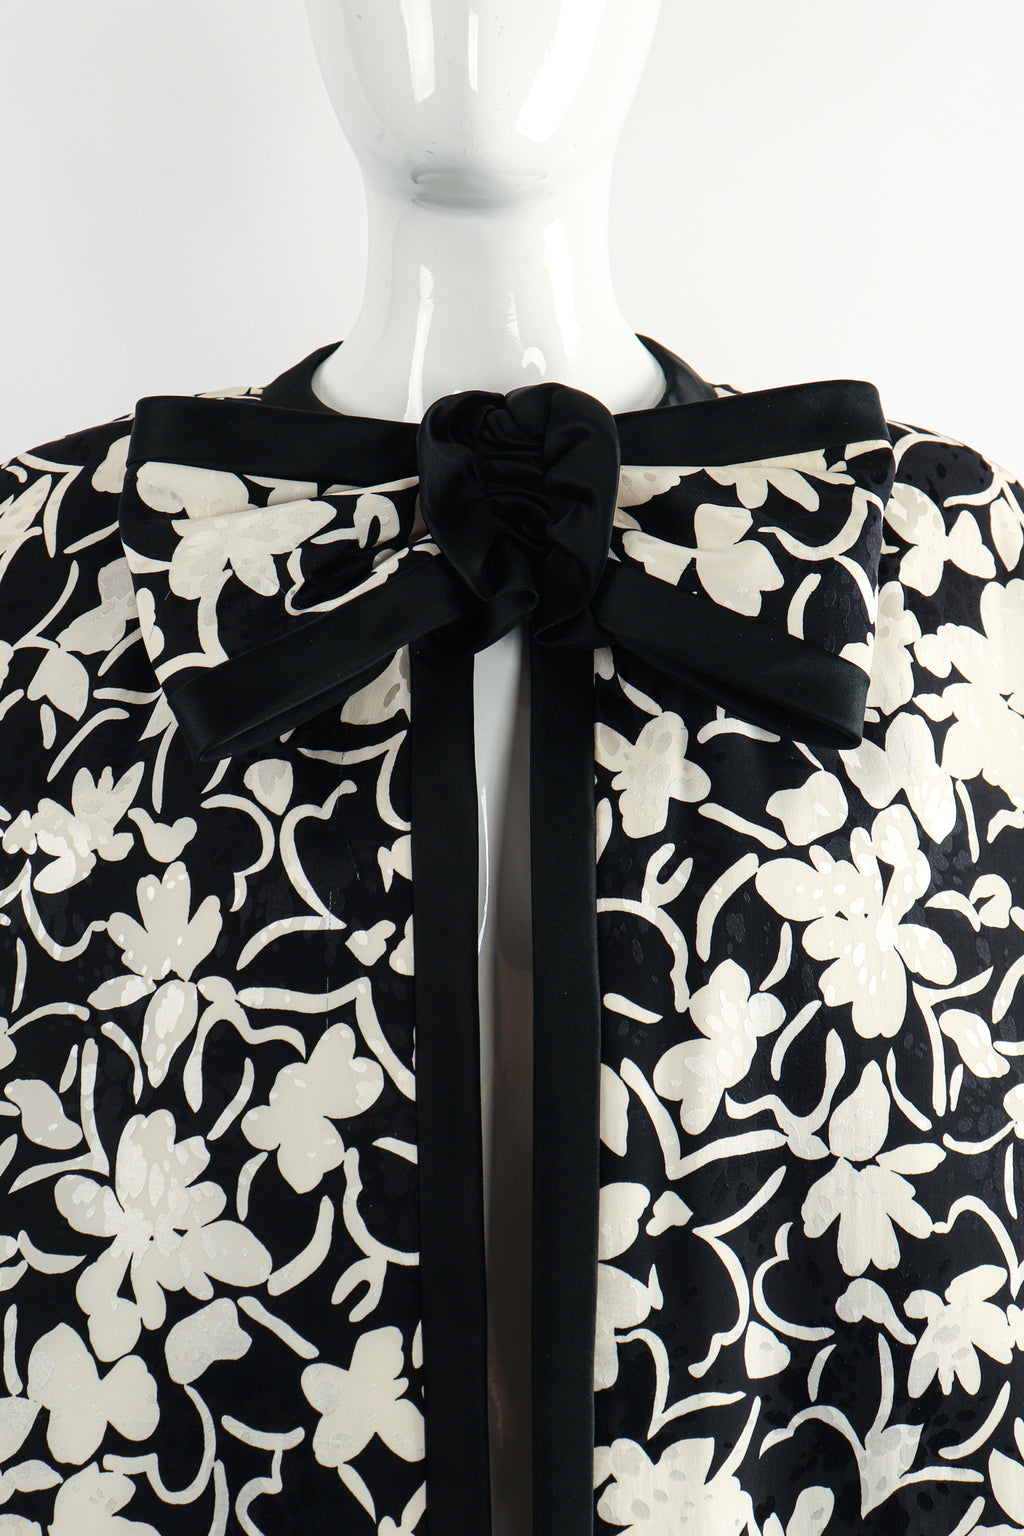 Vintage Touch of Paris by Carmen Zweig Silk Floral Bow Cape on Mannequin neck detail at Recess